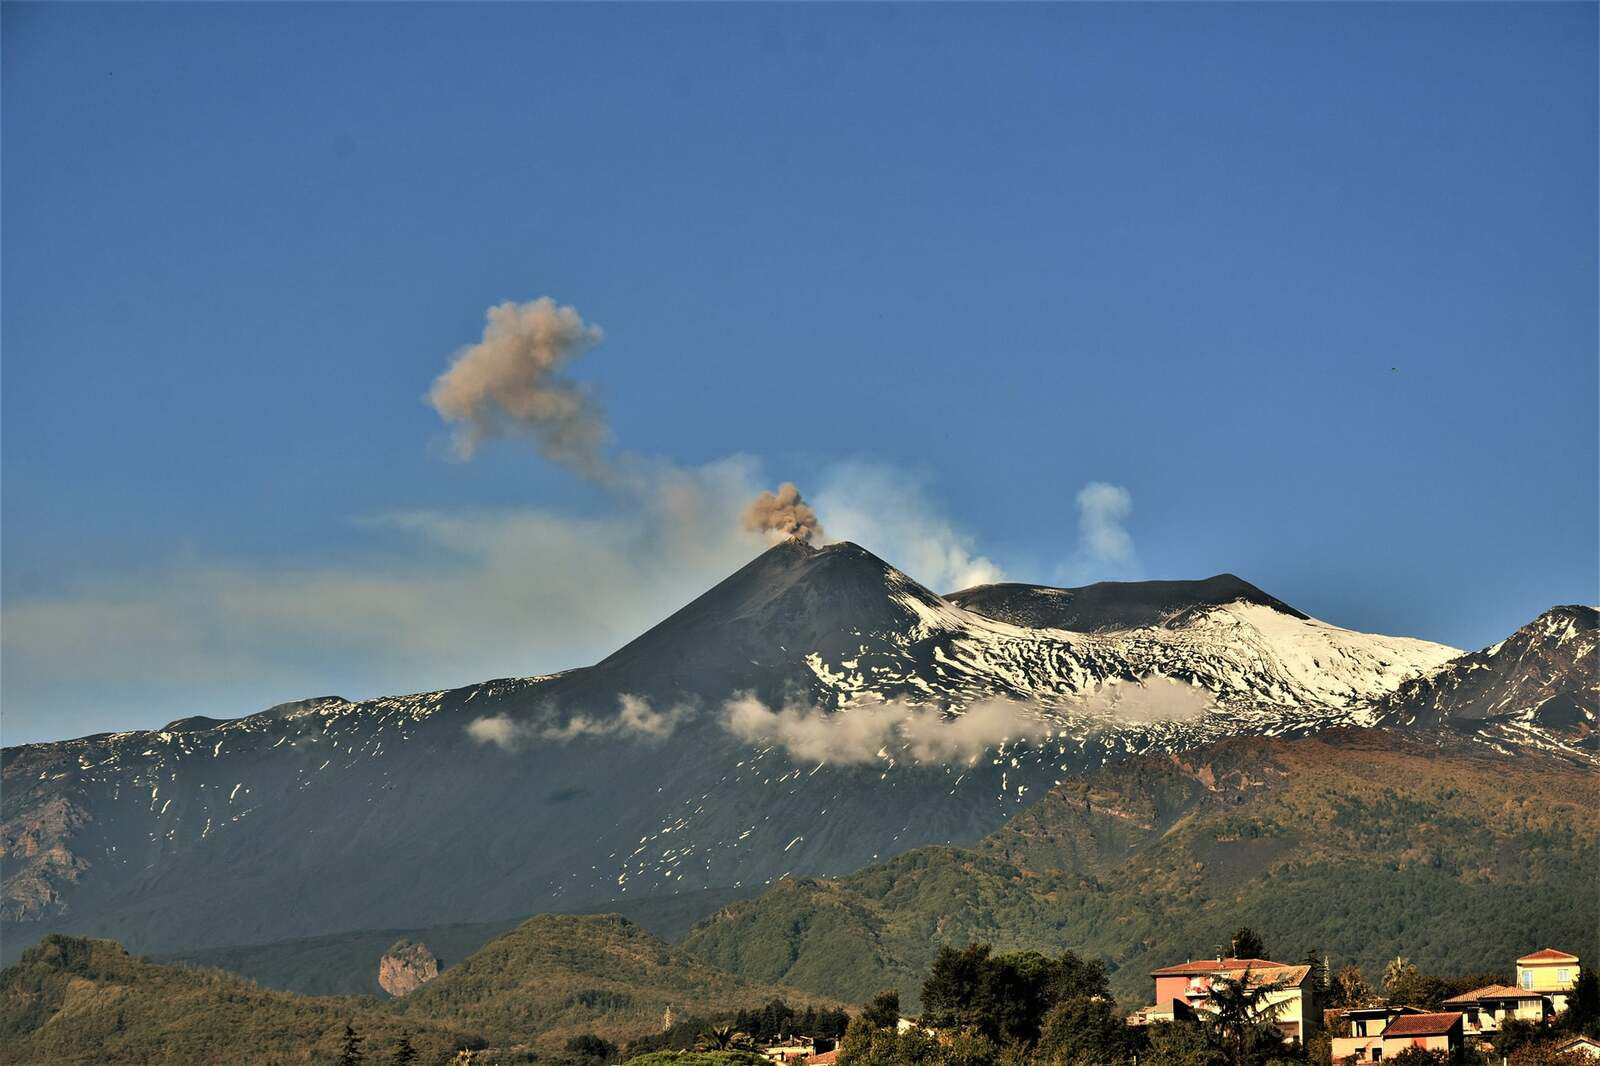 Etna SEC - small explosion and puff of ash and gas on 20.10.2021 / 09:17 - photo © Pippo Scarpinati